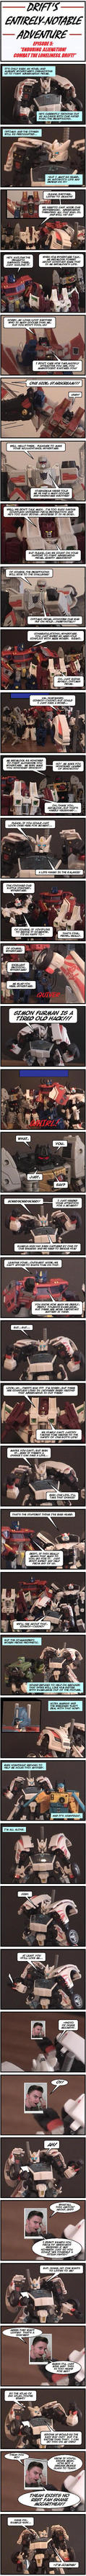 Drift's Notable Adventure- P5 by MikePriest83